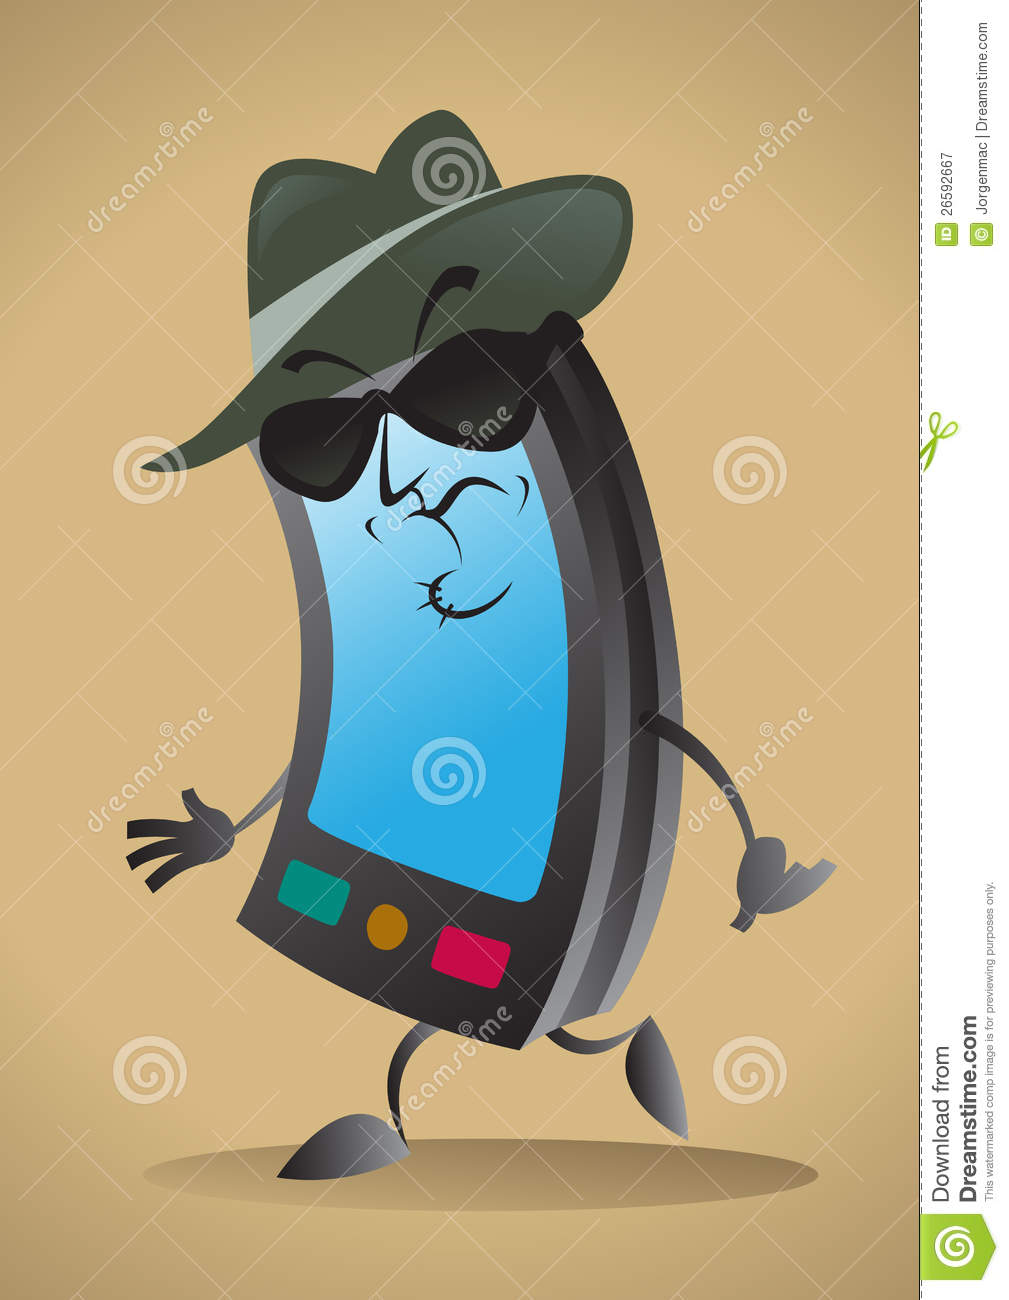 ... of a very sinister cell phone character mr no pr no 0 538 0